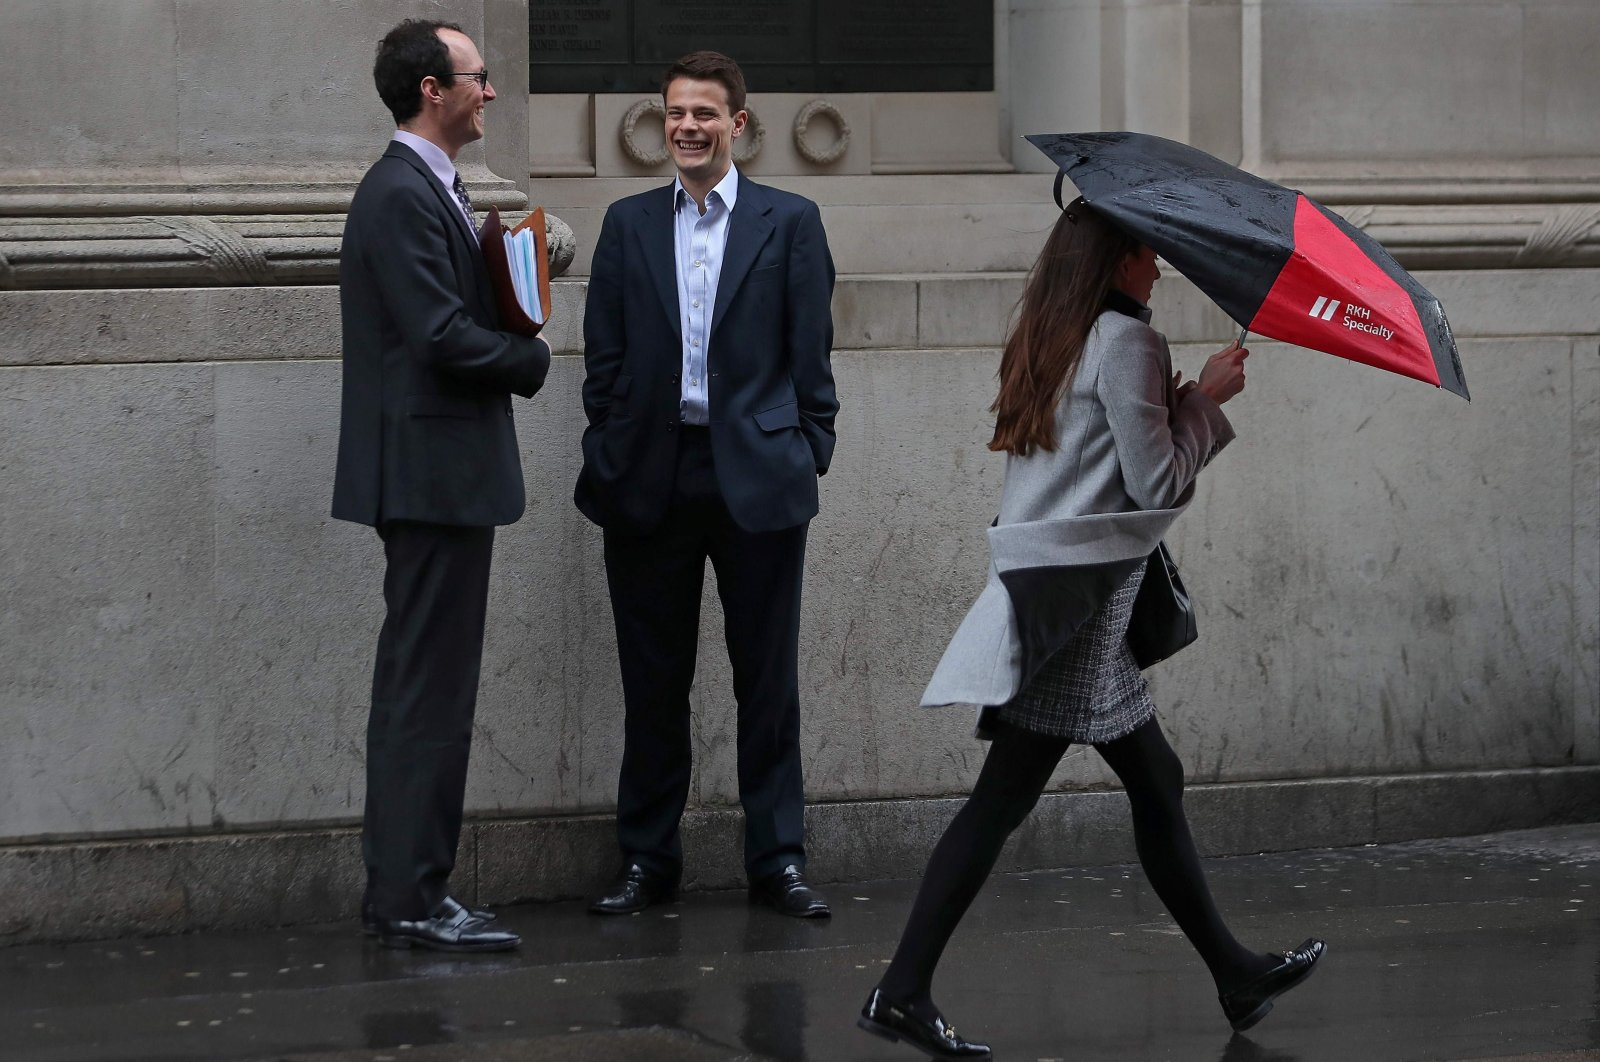 A woman shelters from the rain beneath an umbrella as she walks past talking man in the city of London, U.K., April 4, 2018. (AFP Photo)